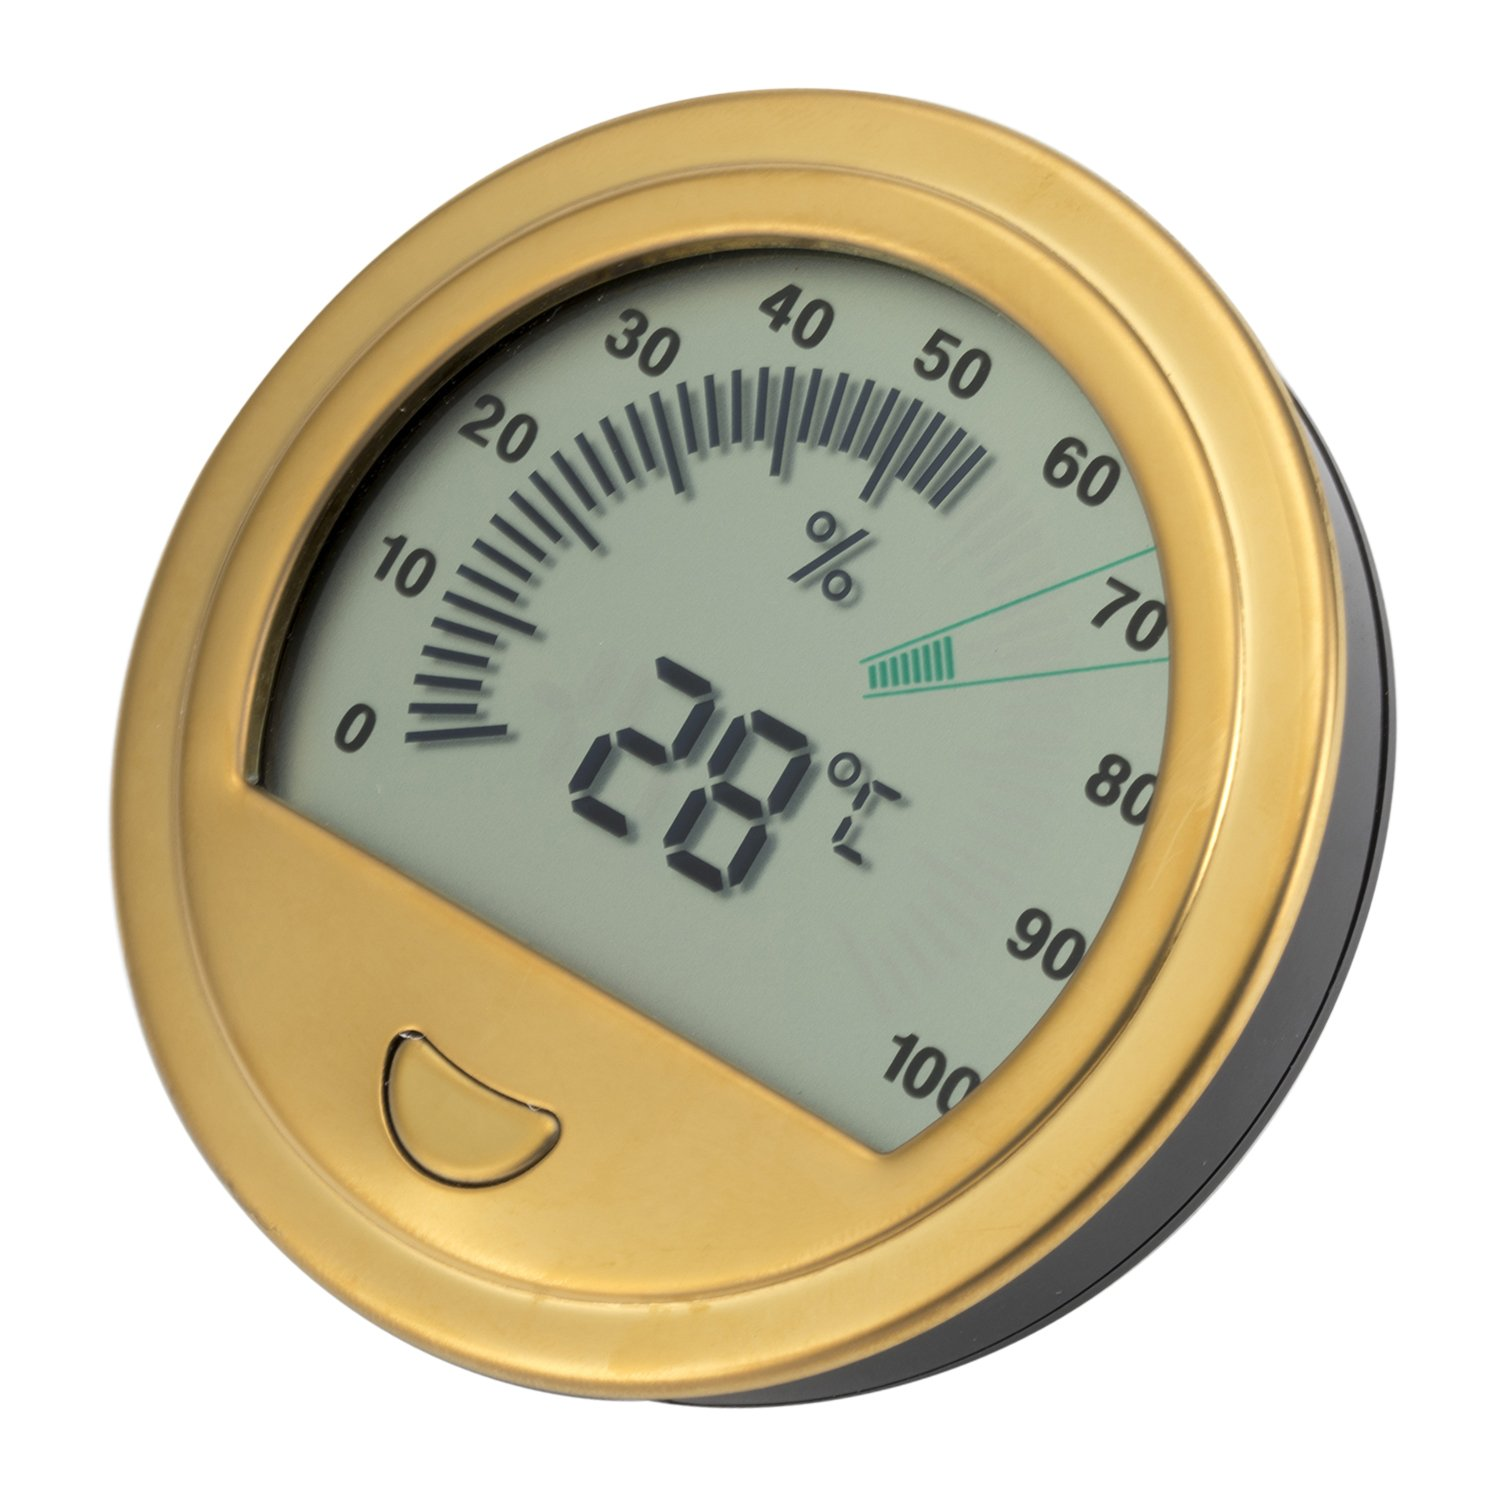 XIFEI new stainless steel cigar case Temperature and humidity meter High accuracy Thermometer